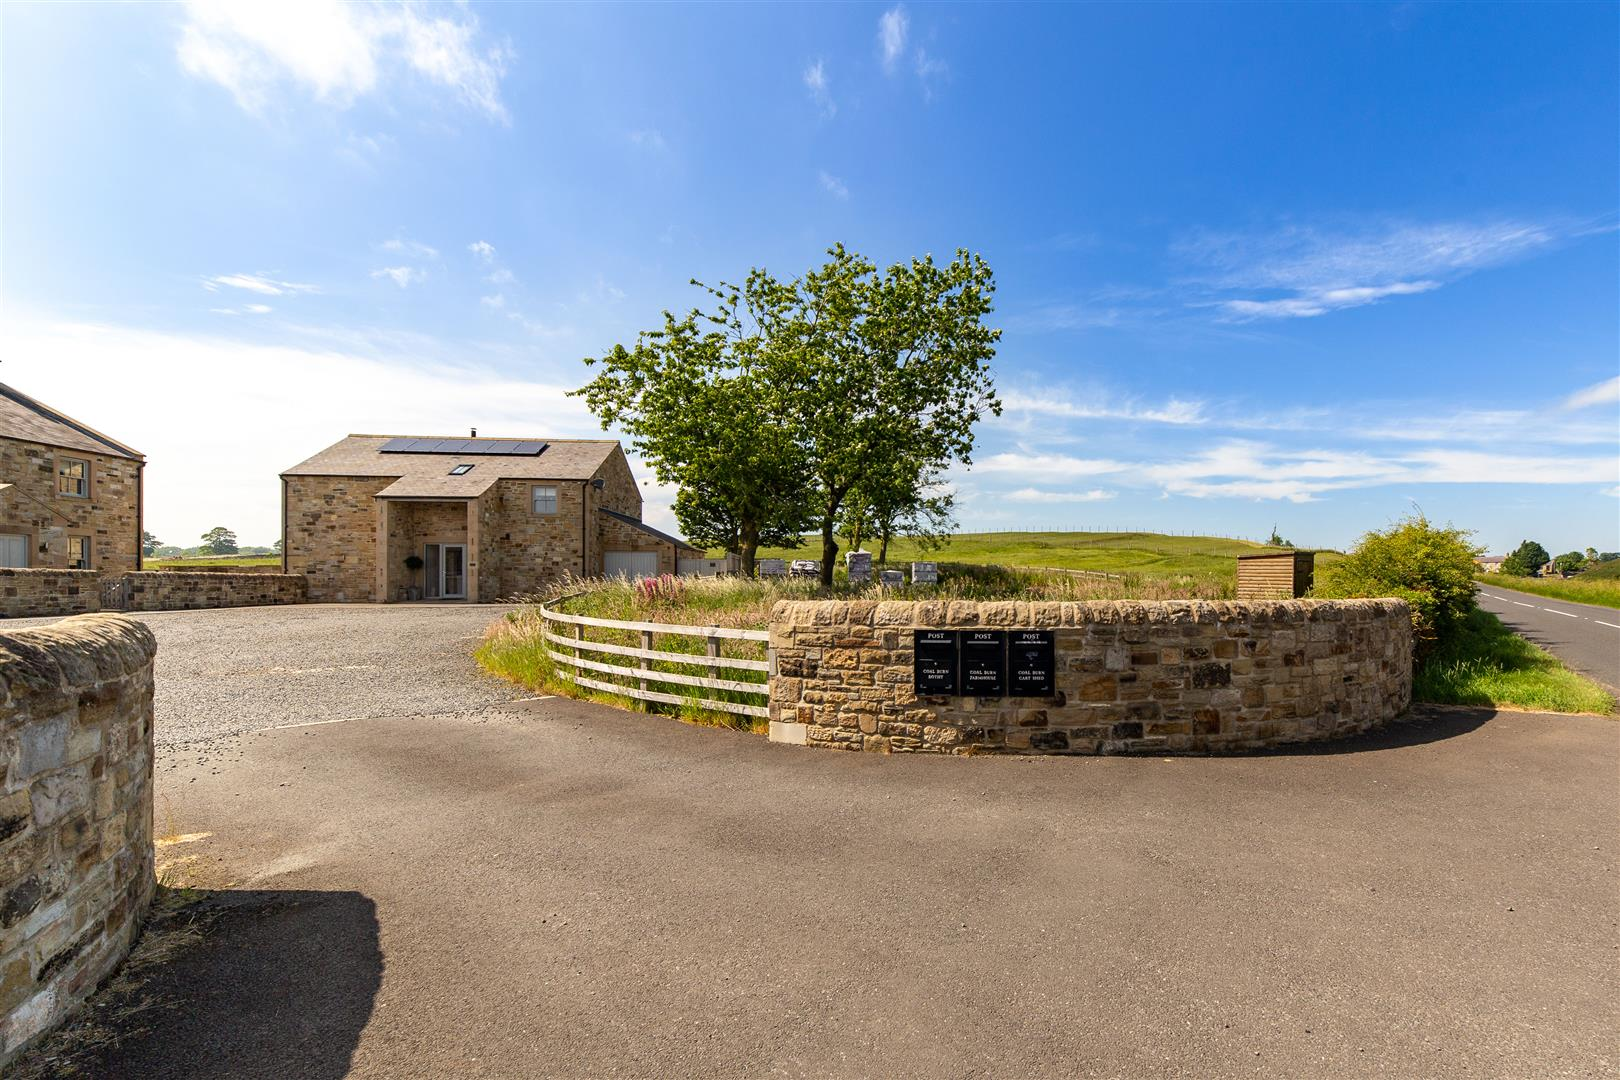 4 bed detached house for sale, Hexham 5